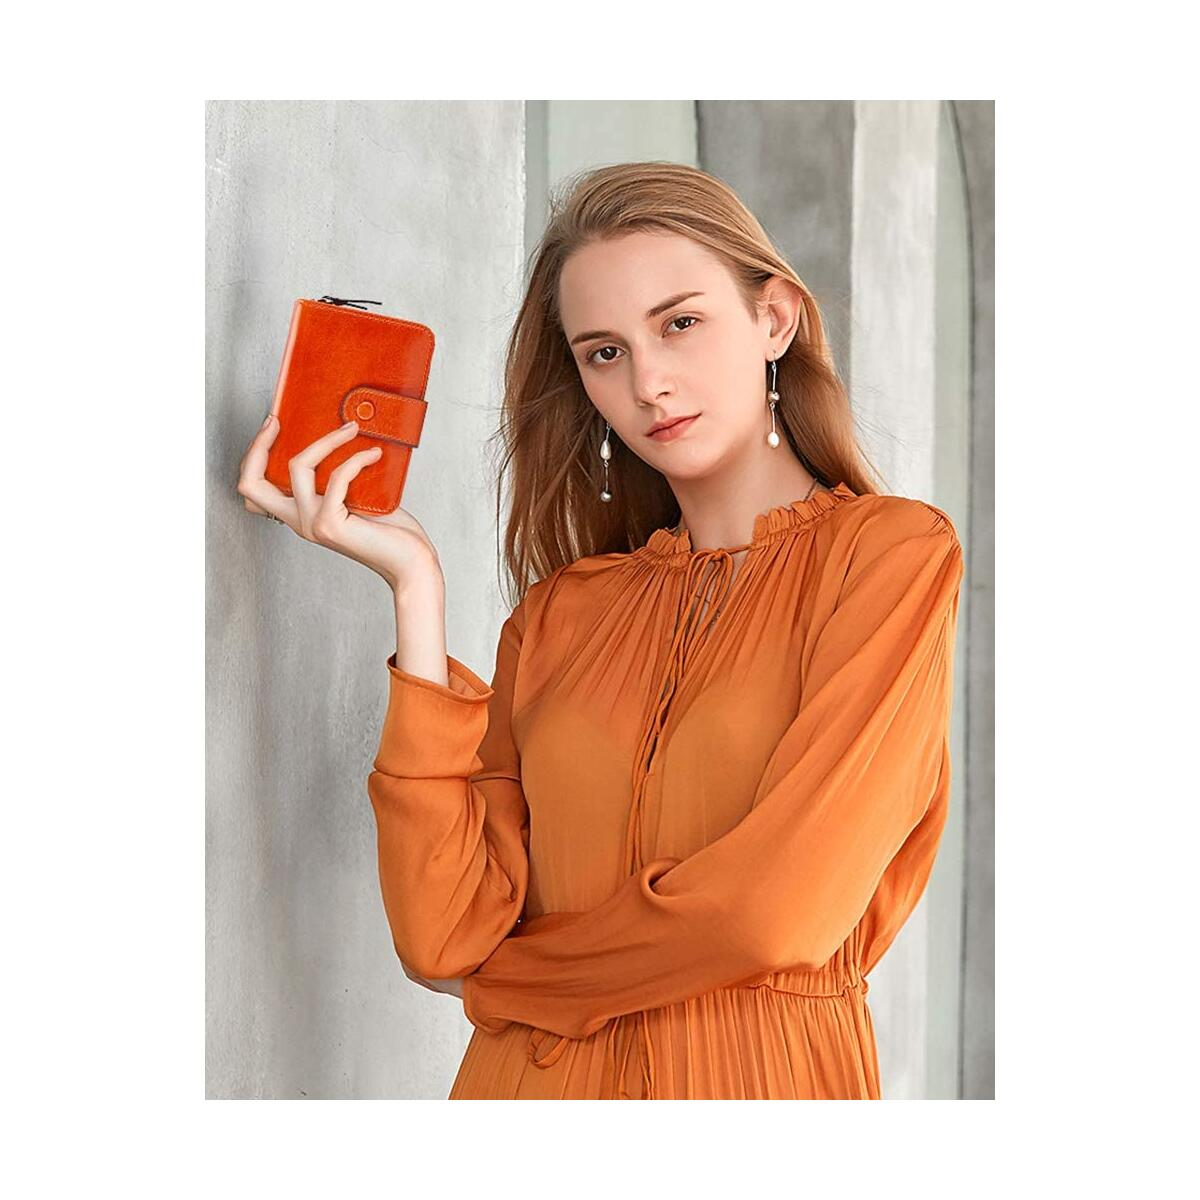 LUCKYSGY Wallets for Women RFID Blocking Leather Bifold Small Wallet Zipper Purses Card Holder with ID Window E150 Orange